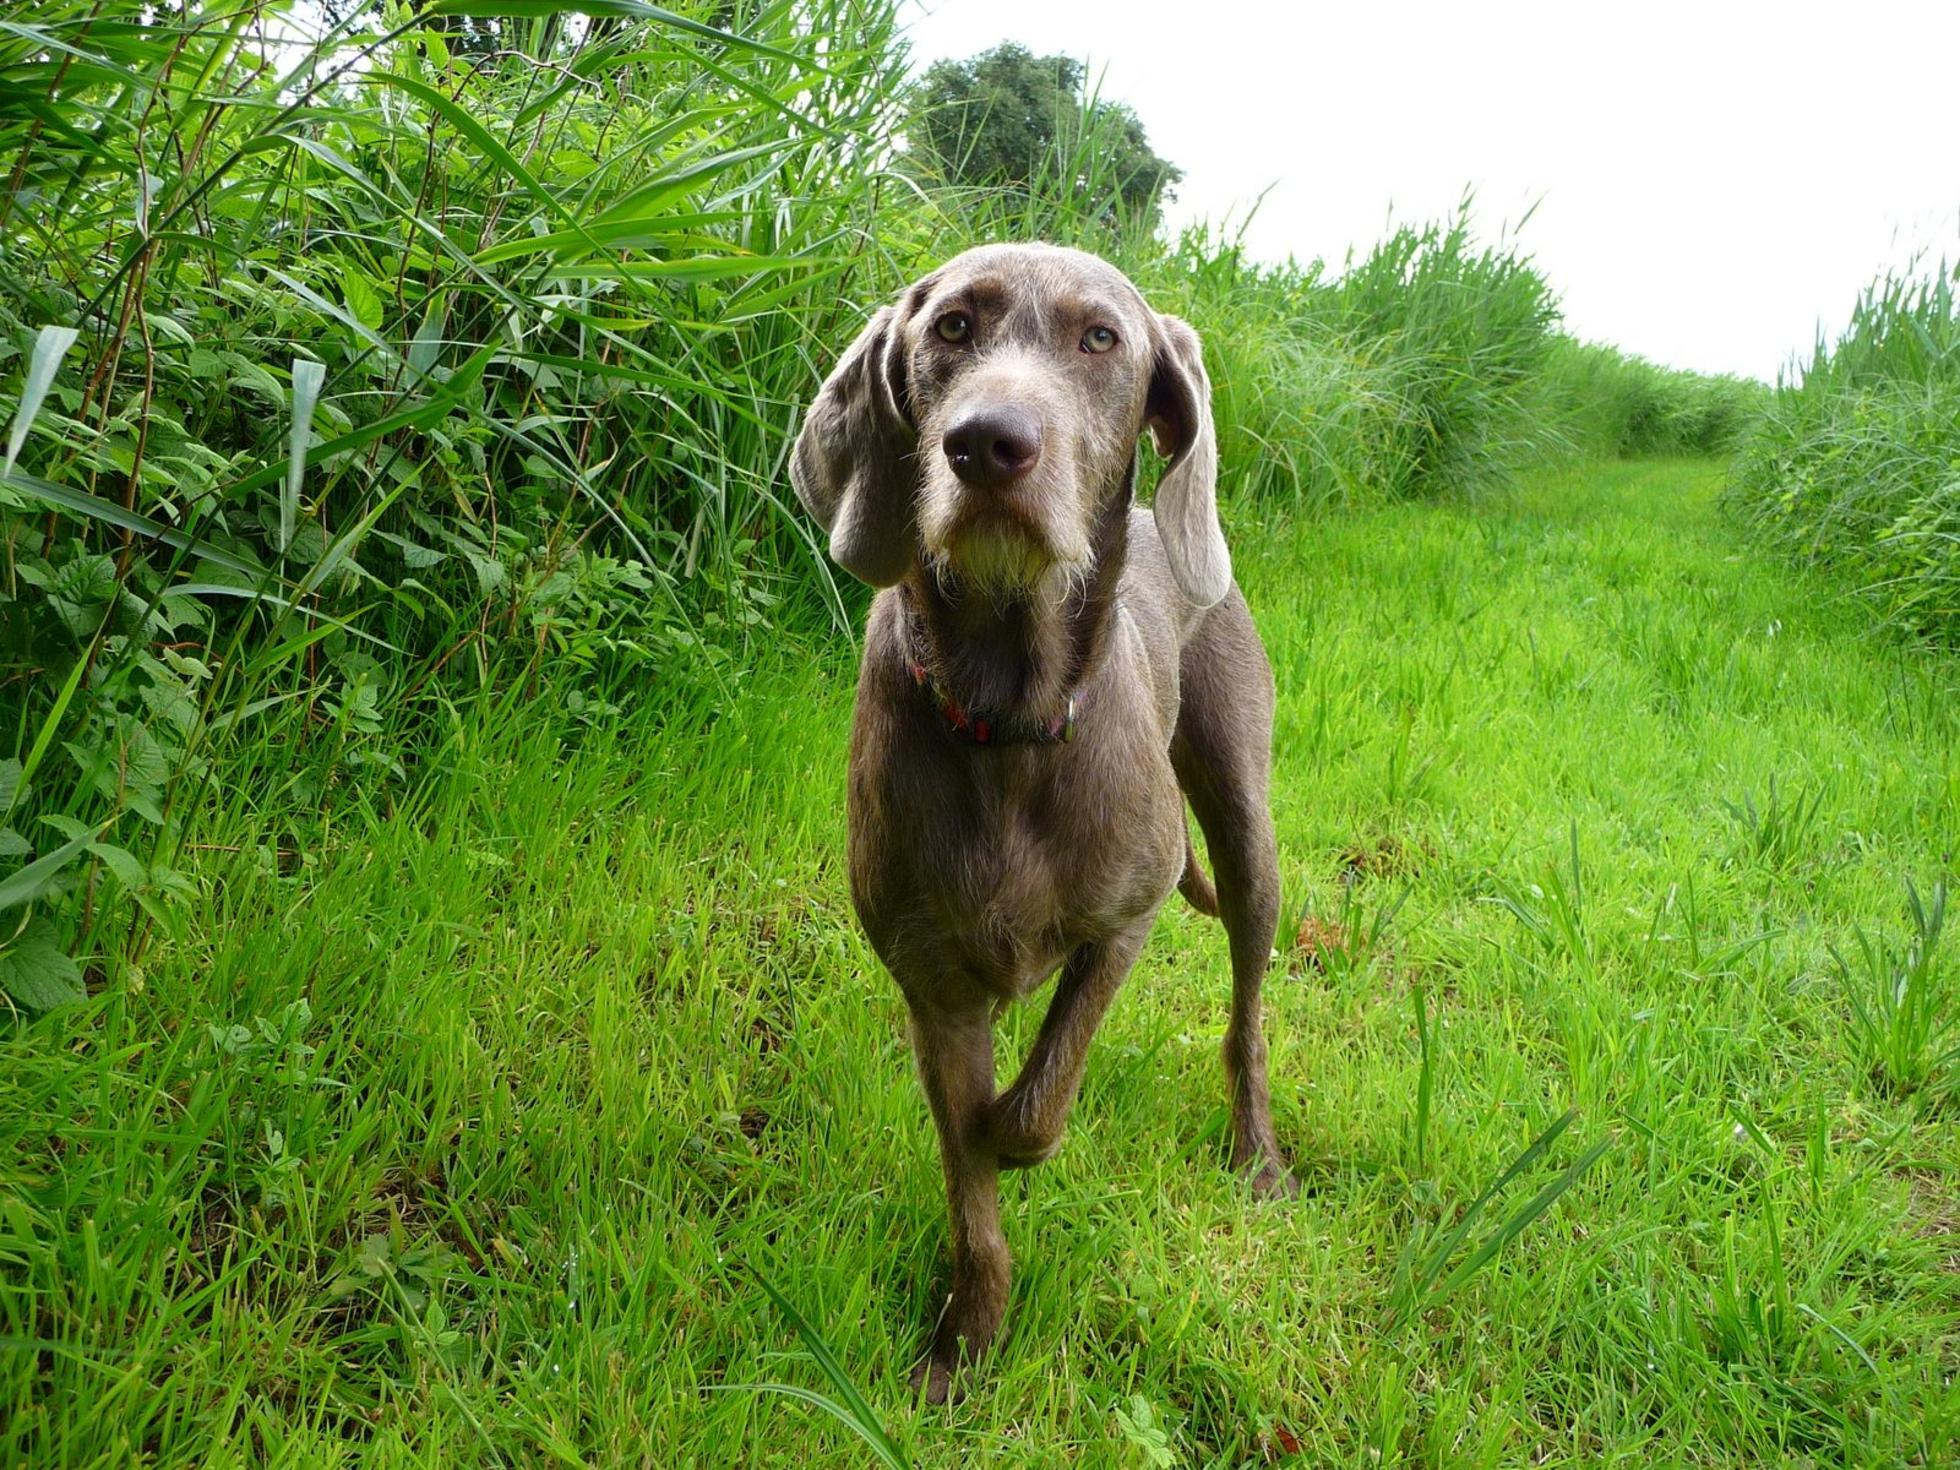 Slovakian Rough-haired Pointer dog wallpaper